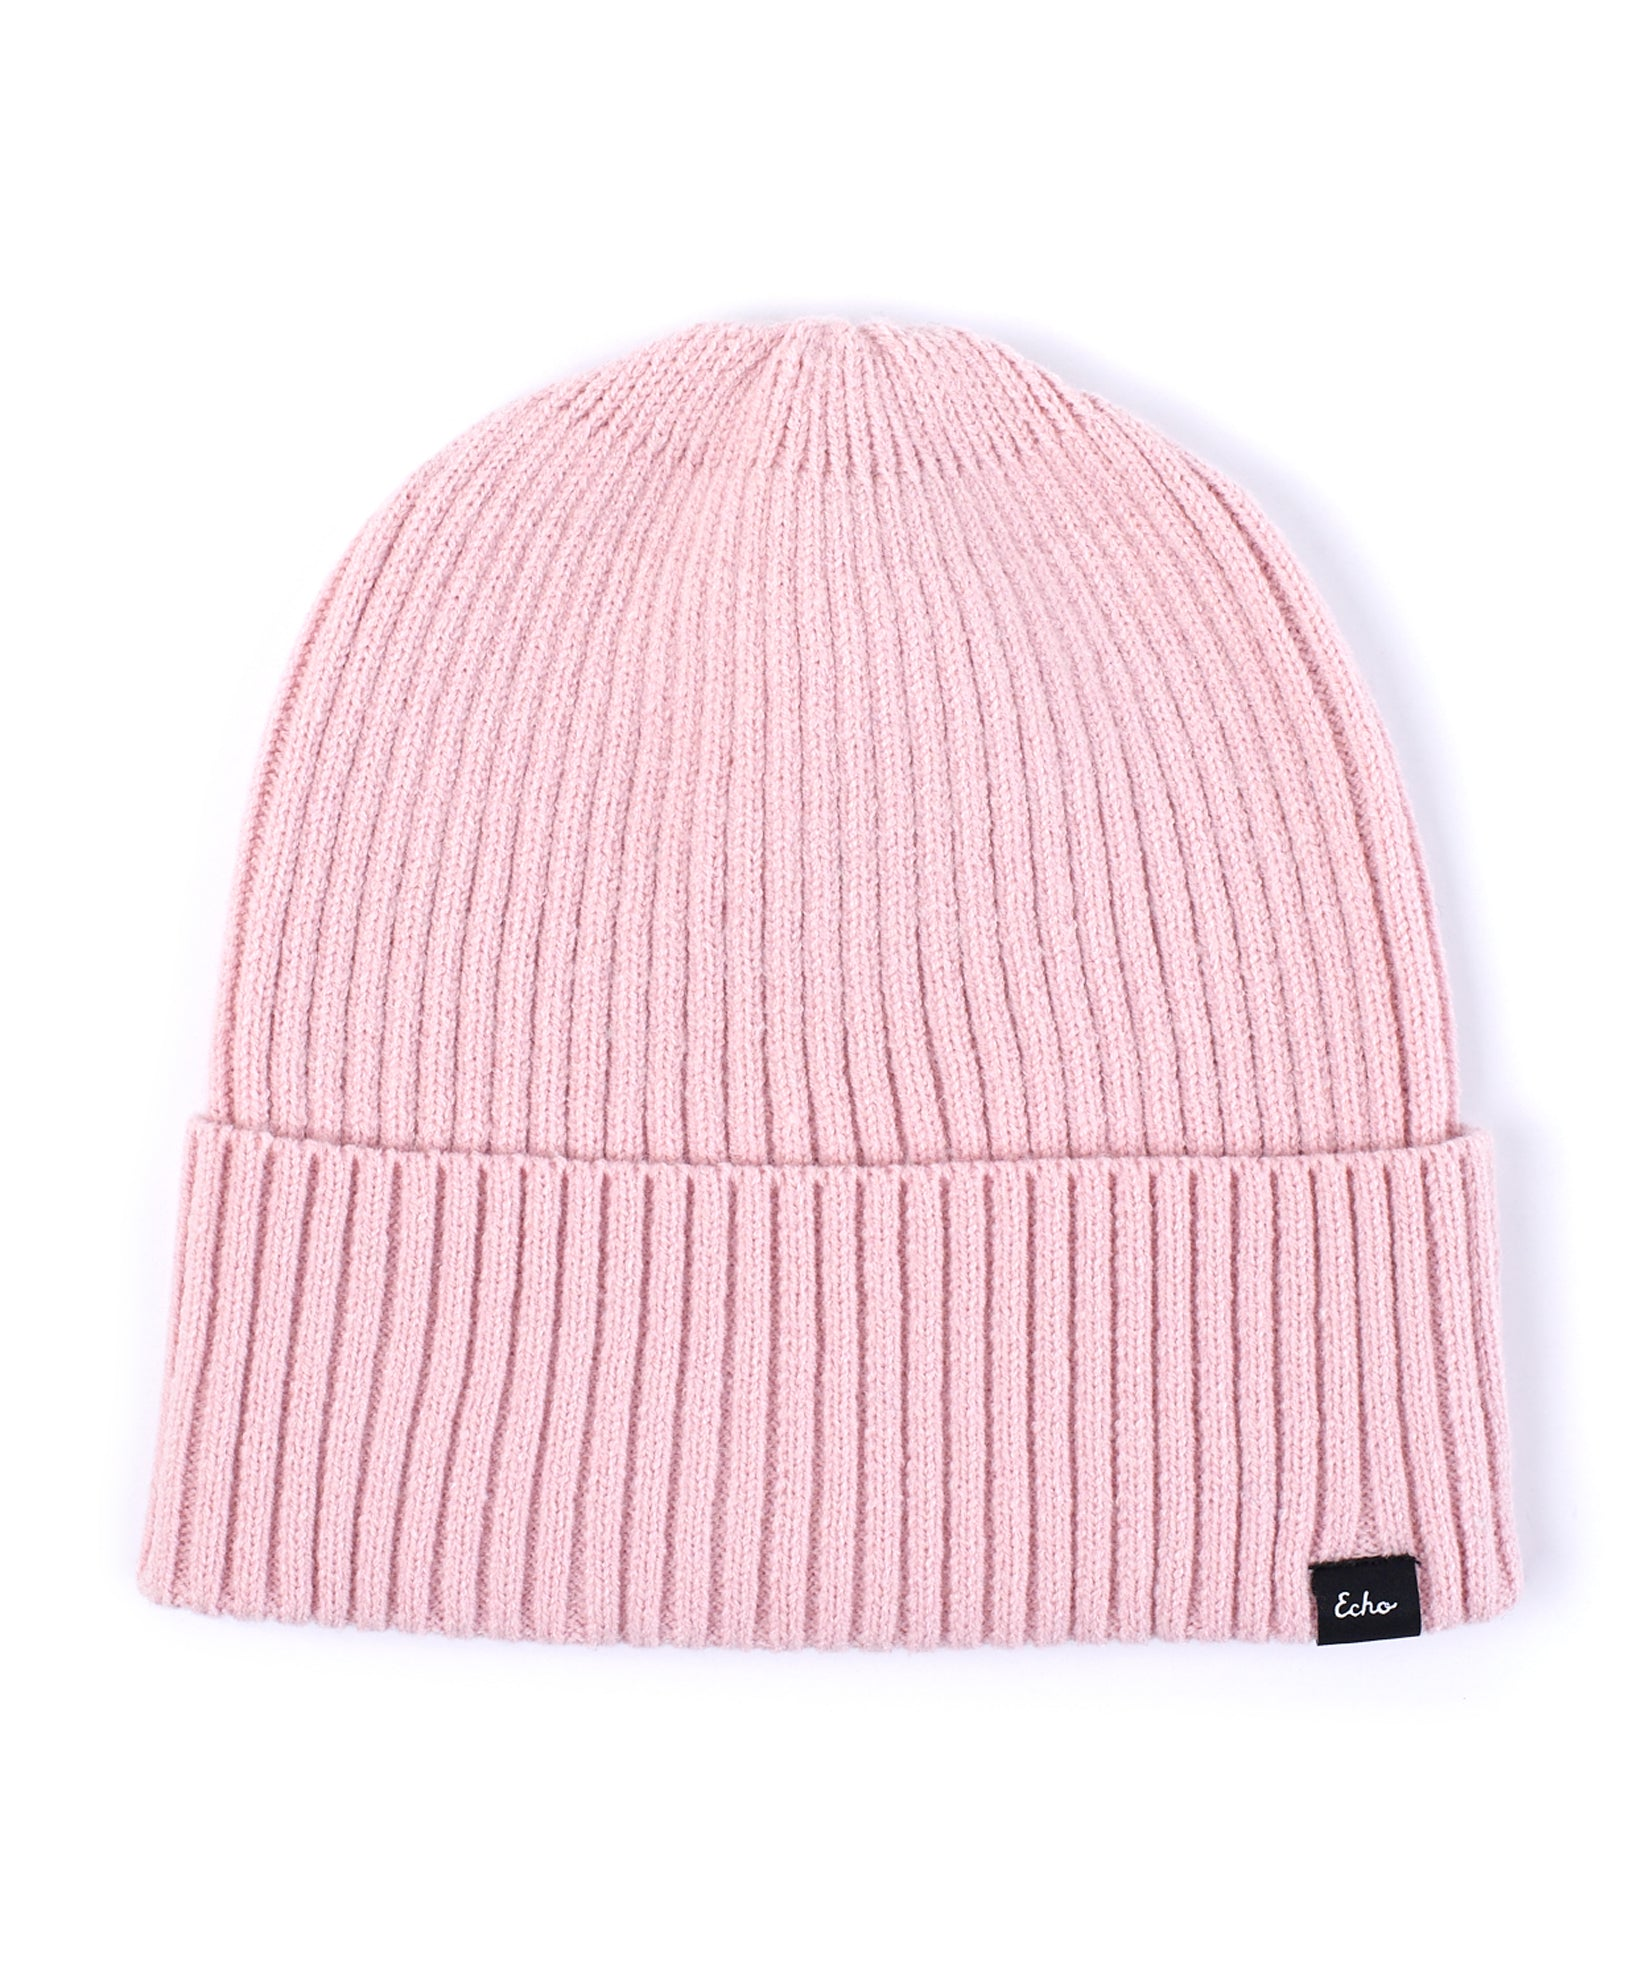 Jaipur Pink - Active Stretch Ribbed Cuff Beanie